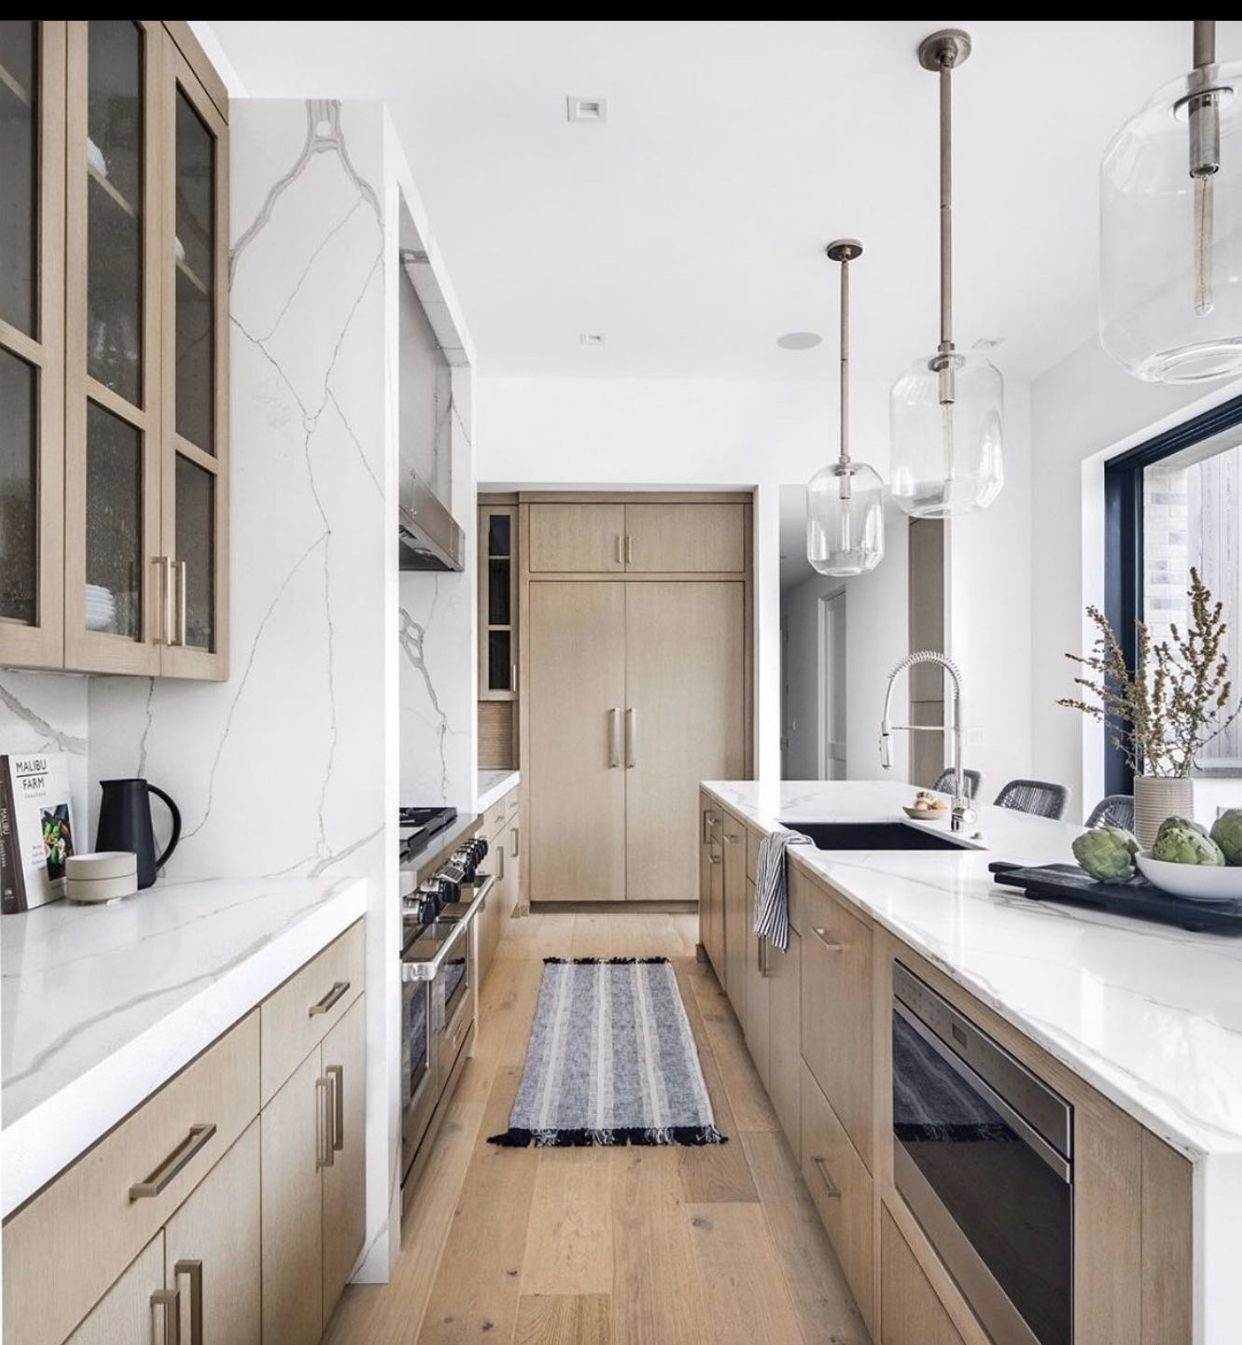 Pin By Emily Robison On Dream House In 2020 Kitchen Inspiration Design Kitchen Inspirations Beautiful Kitchens